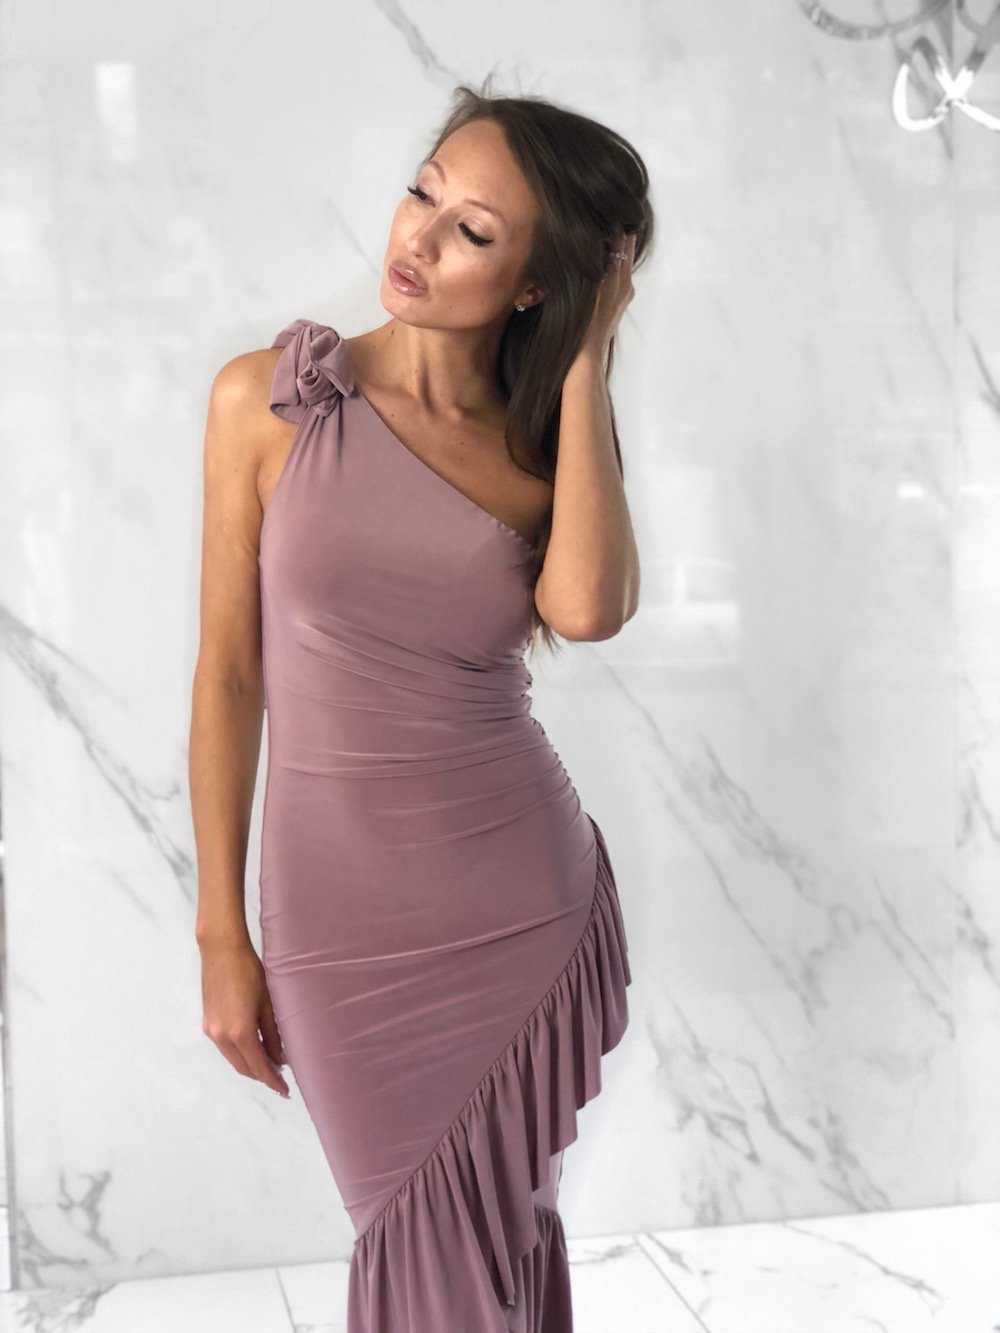 Neelam Mauve Dress, Women's Mauve Dresses